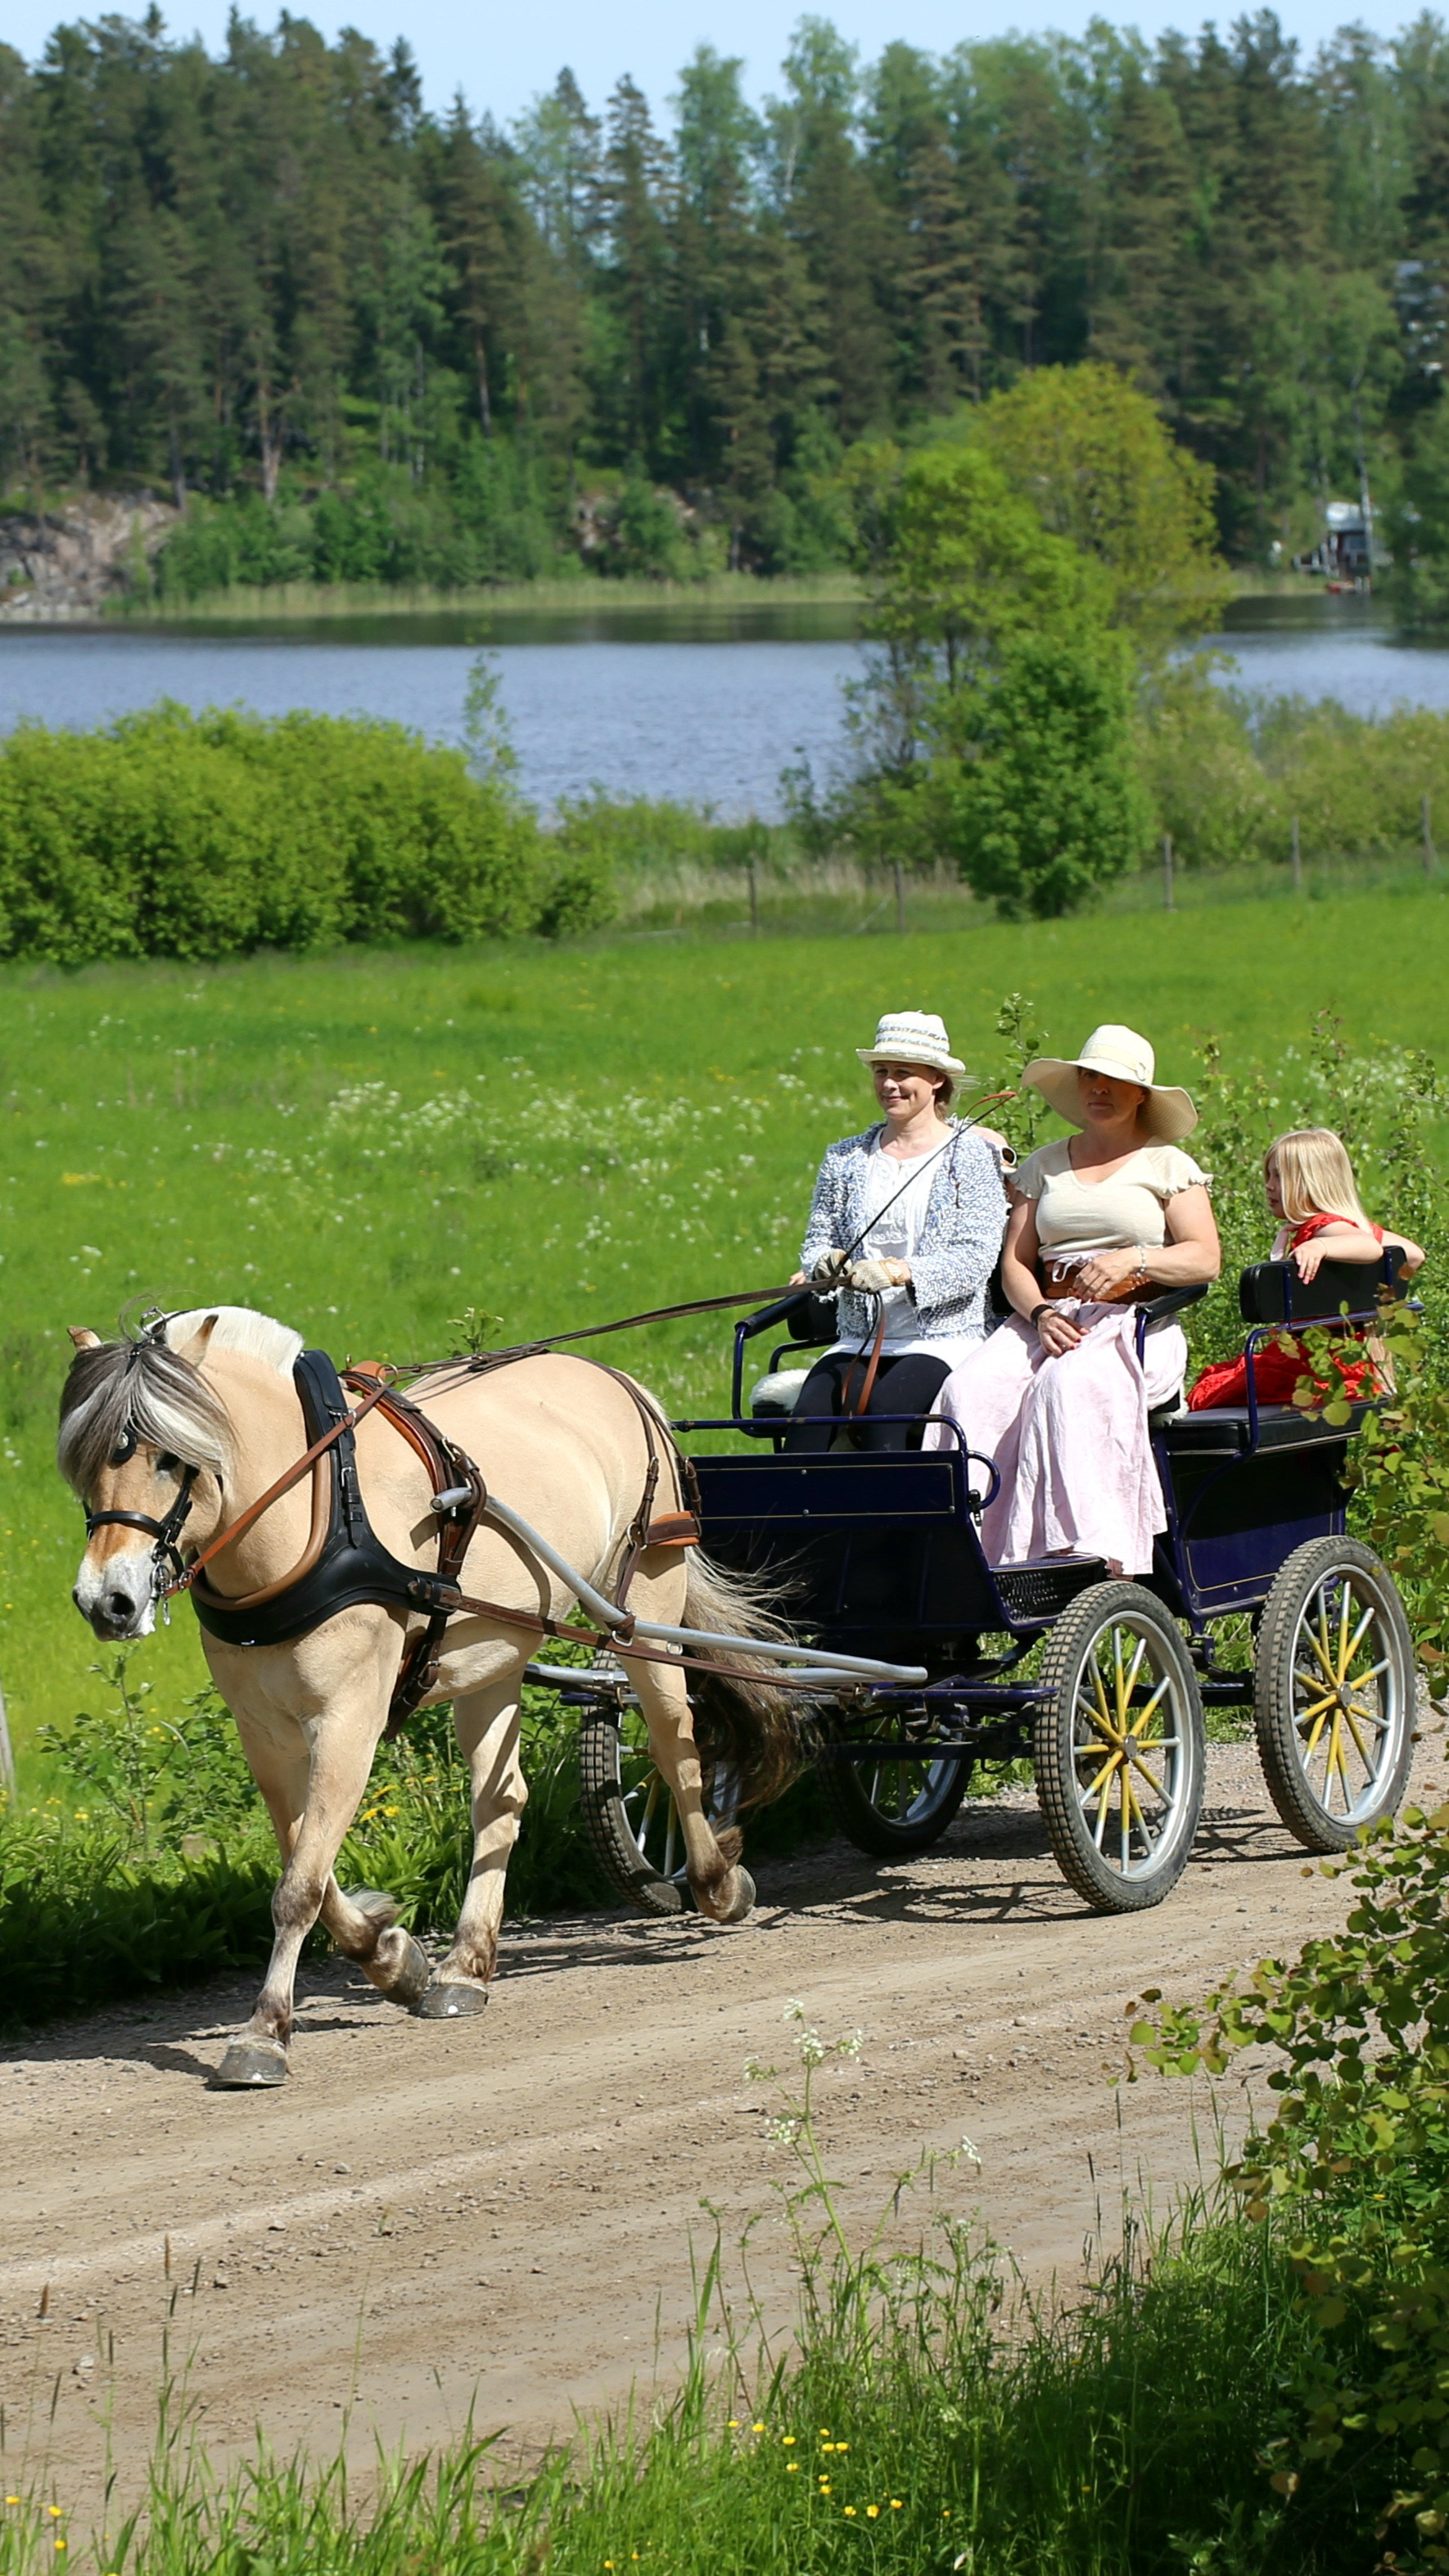 Carriage drive in beautiful countryside